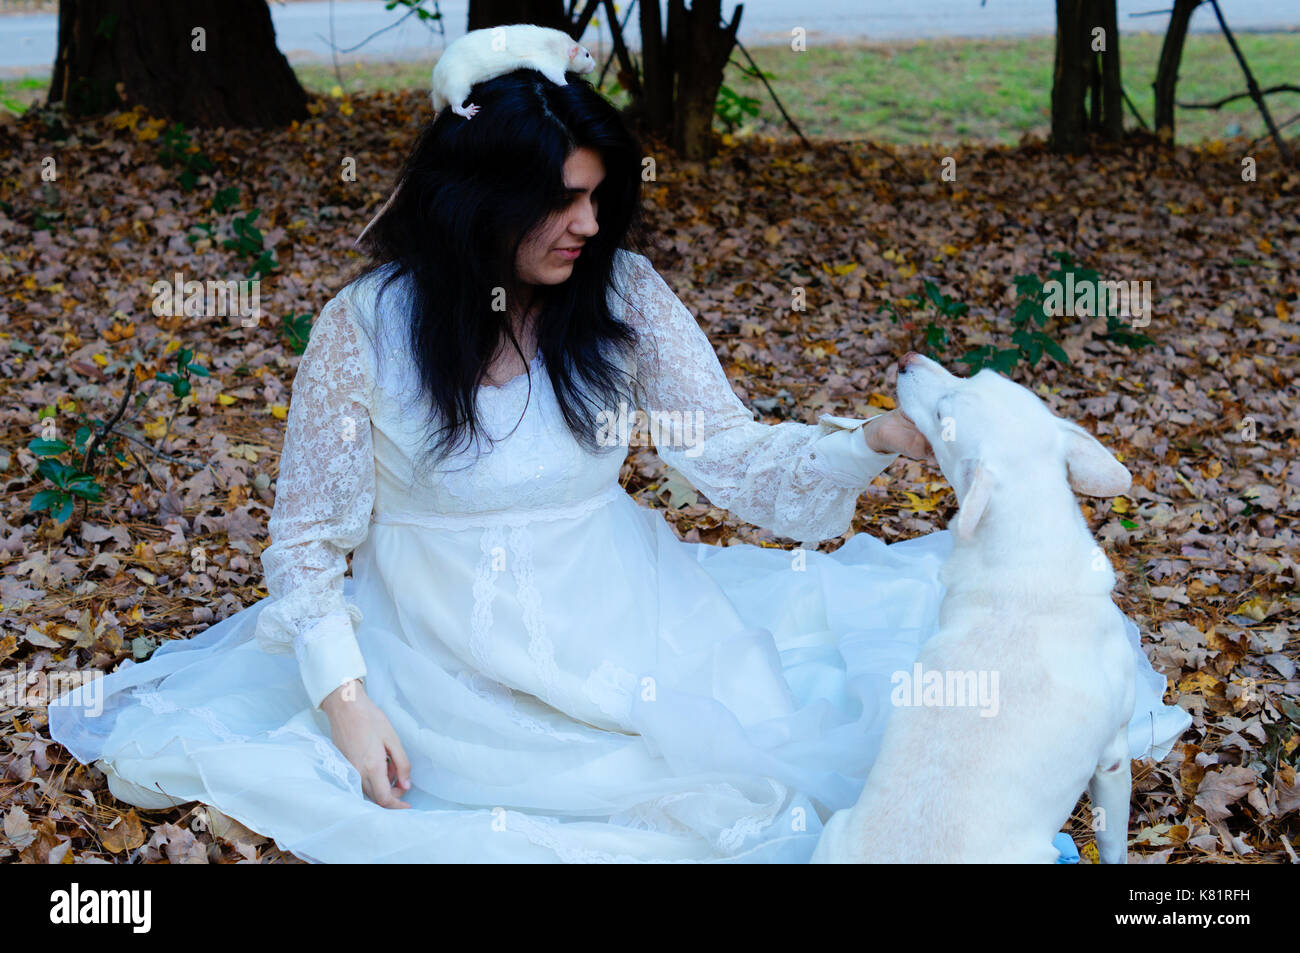 Teen girl sitting down petting a white dog while a white rat is on her head - Stock Image